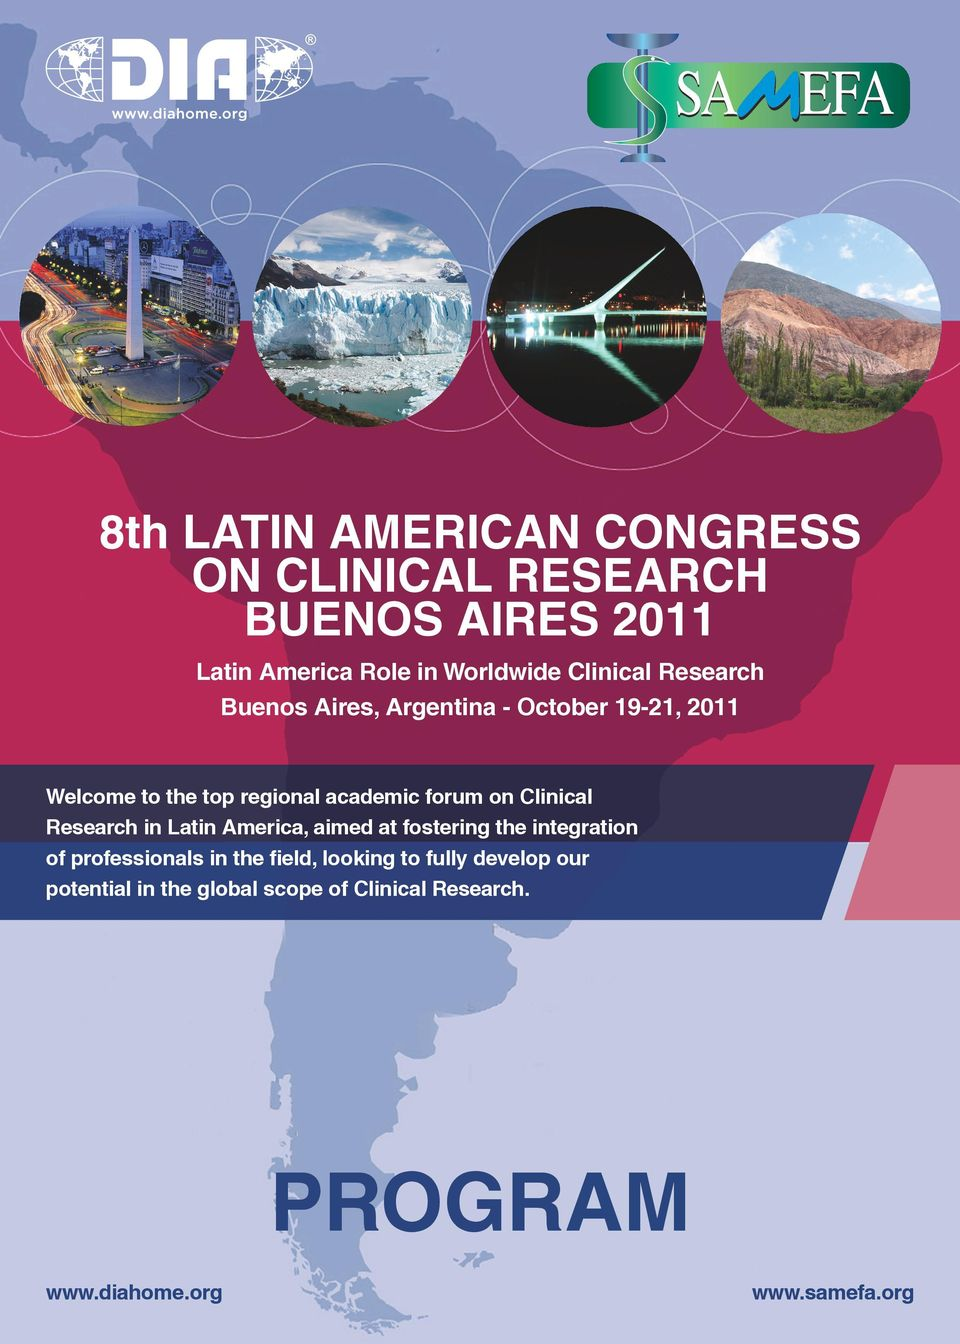 Clinical Research in Latin America, aimed at fostering the integration of professionals in the field,